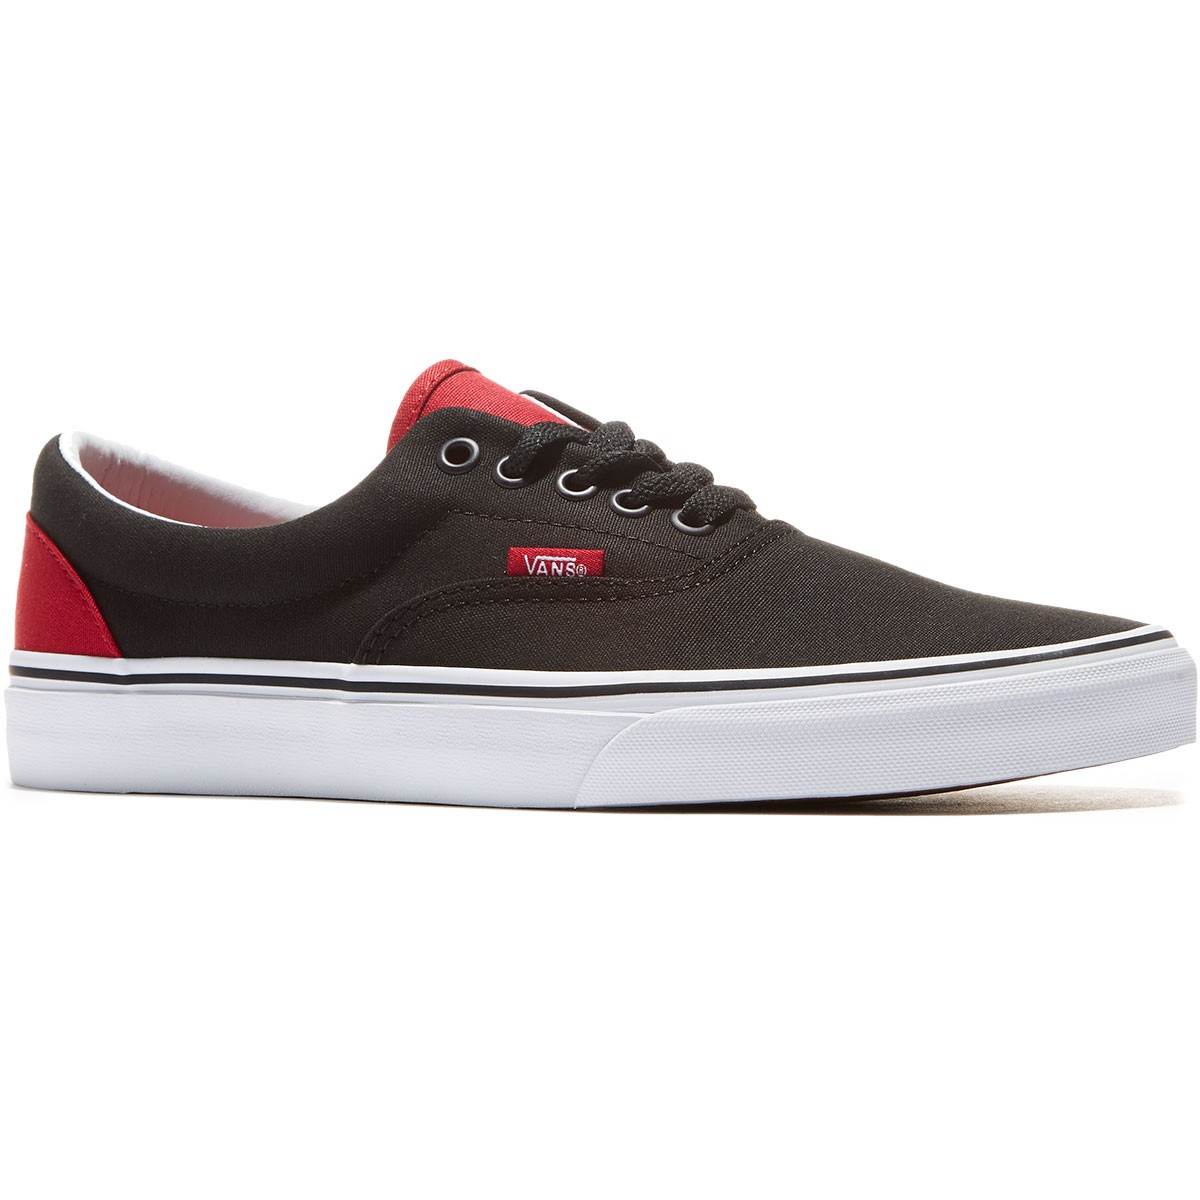 Vans Era Shoes - Pop Chili/Pepper Black - 8.0